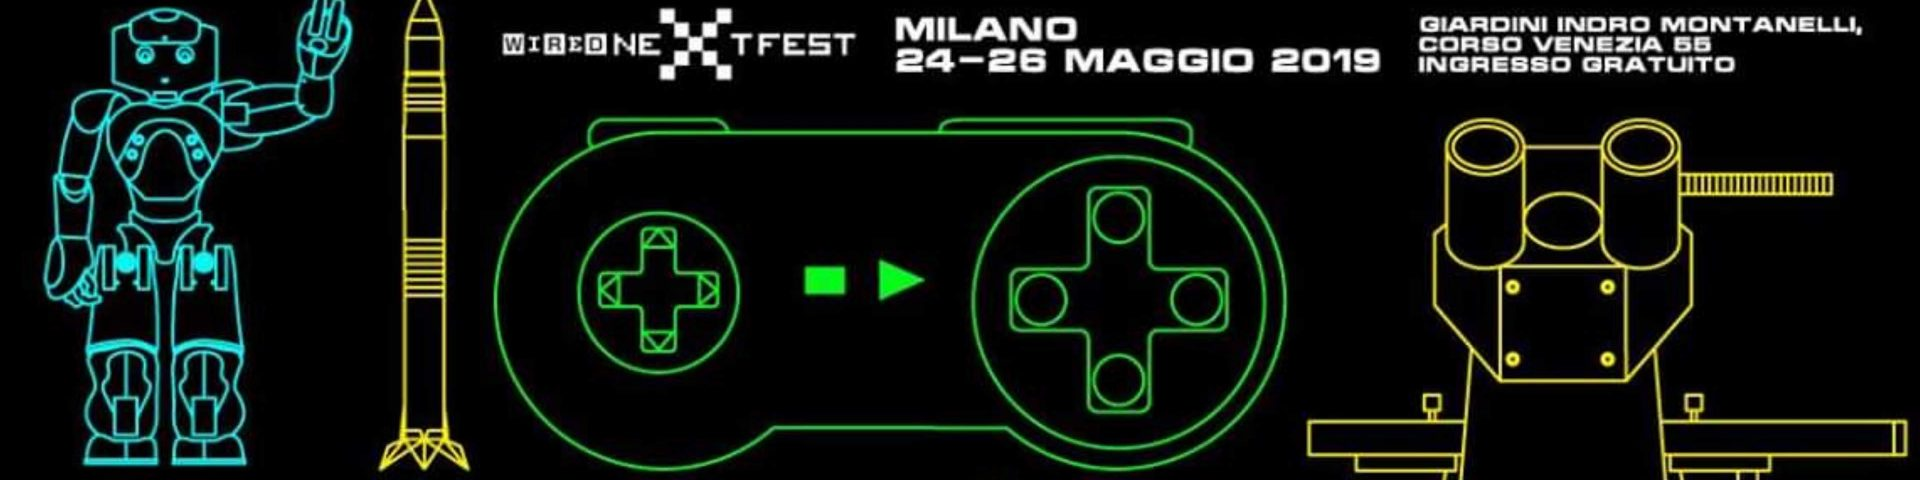 Wired Next Festival 2019: presentato l'intero programma